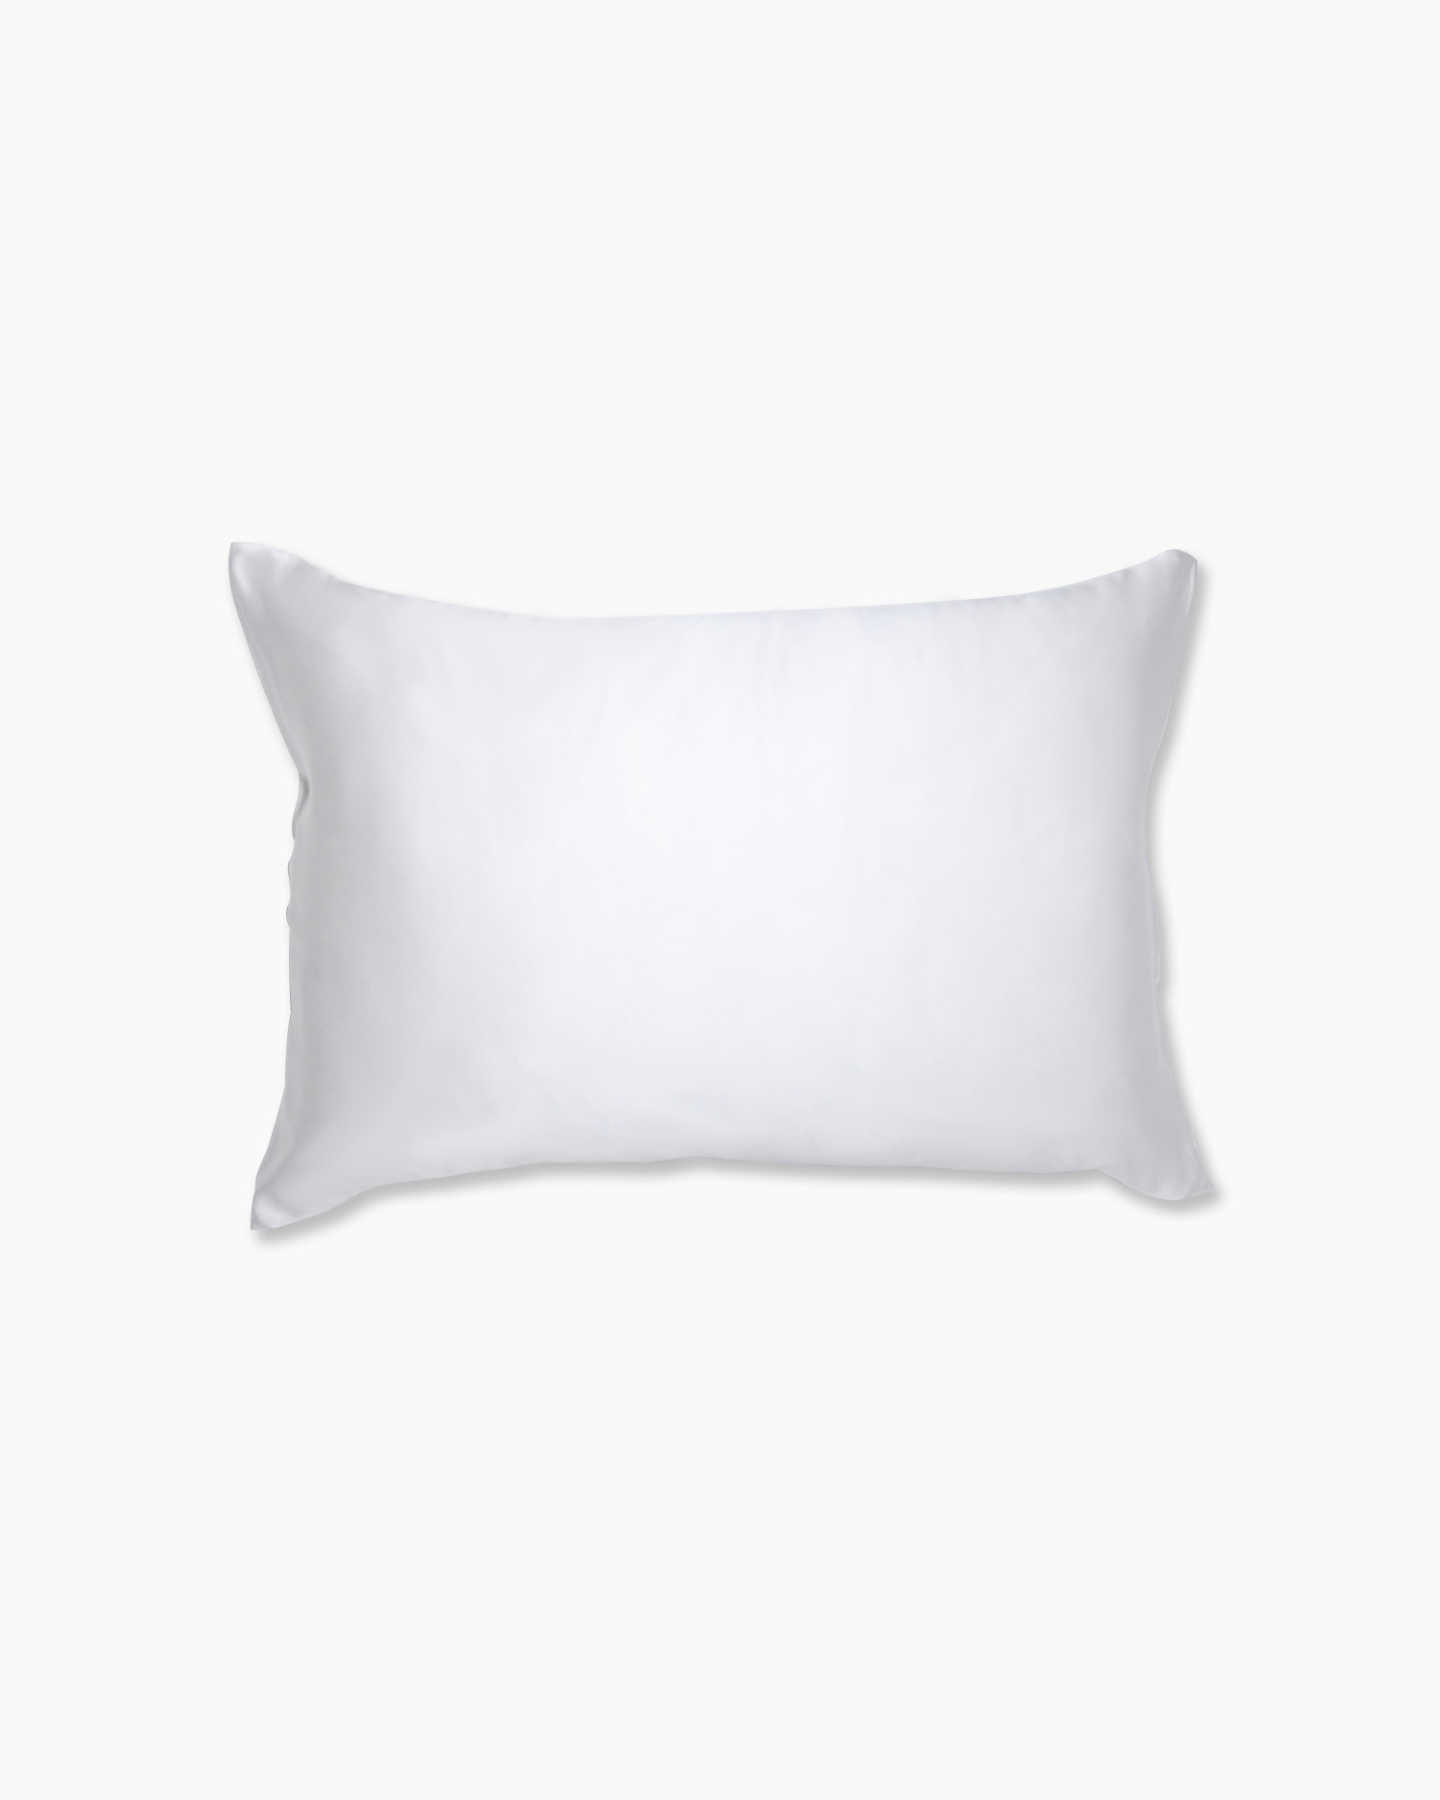 Mulberry Silk Beauty Sleep Pillowcase - Ivory